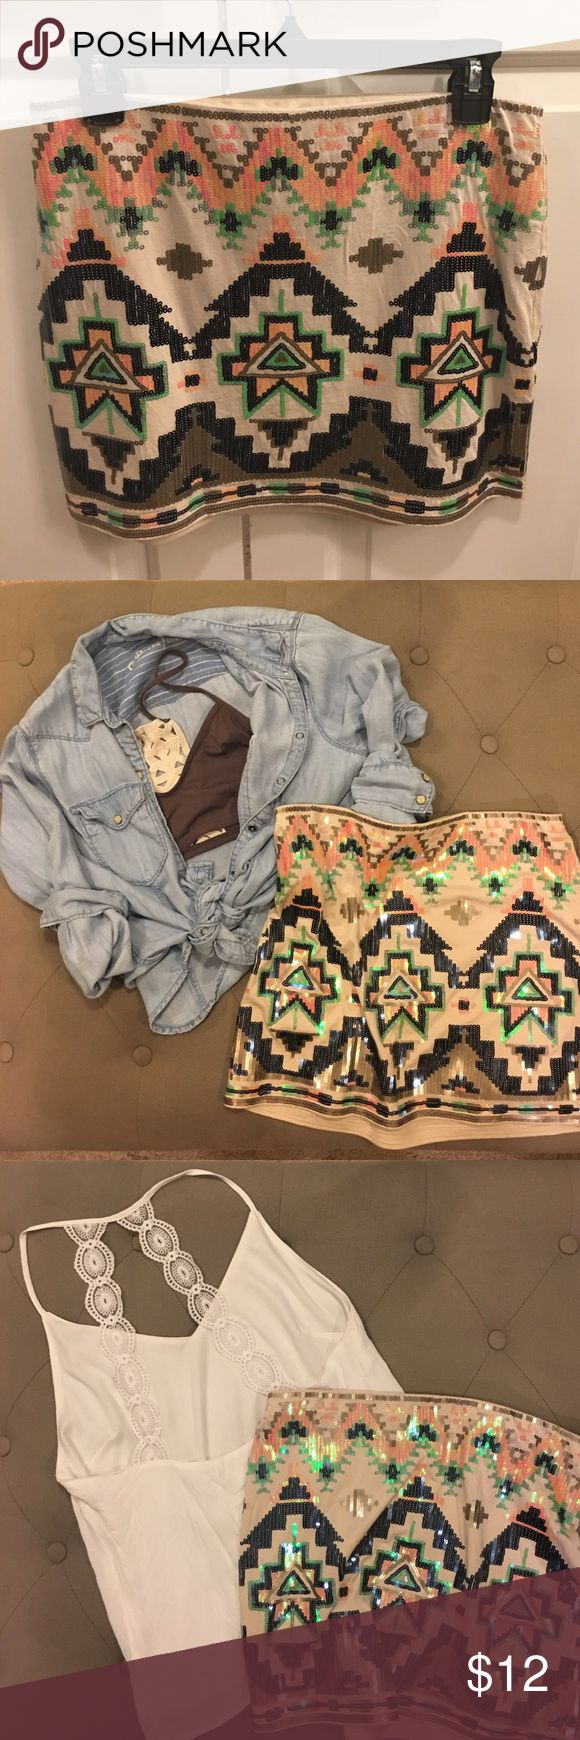 Sequin Aztec Skirt The perfect vacation or going out skirt. Easy to dress up or down. Size S, fits more like a M Express Skirts Mini